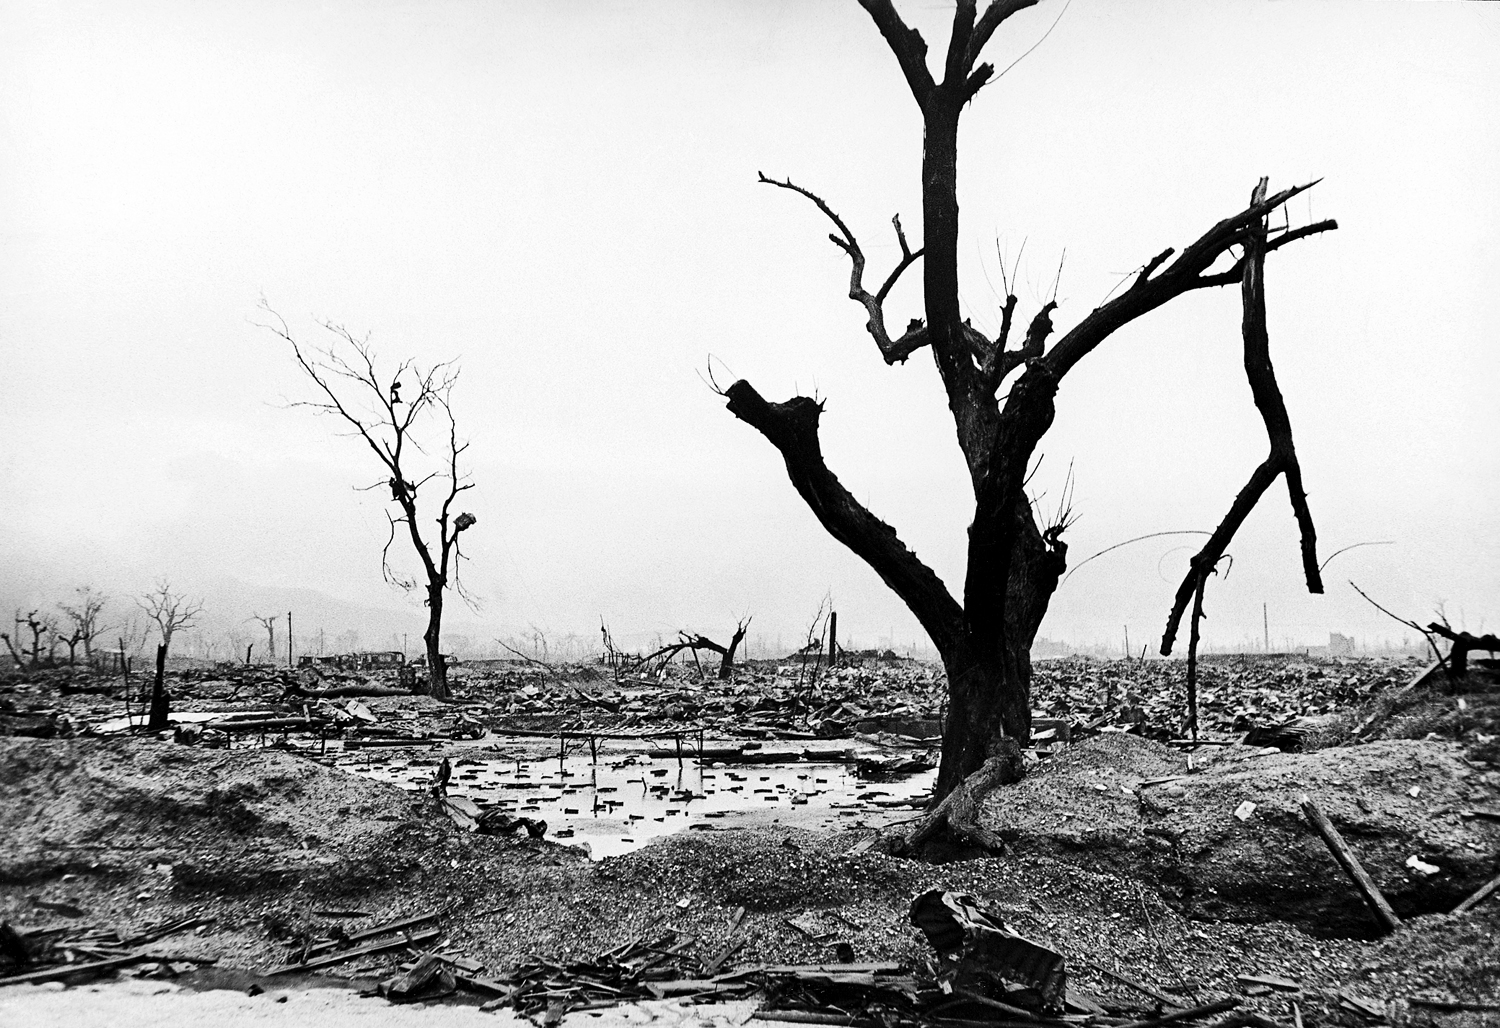 Not published in LIFE. Neighborhood reduced to rubble by atomic bomb blast, Hiroshima, 1945.